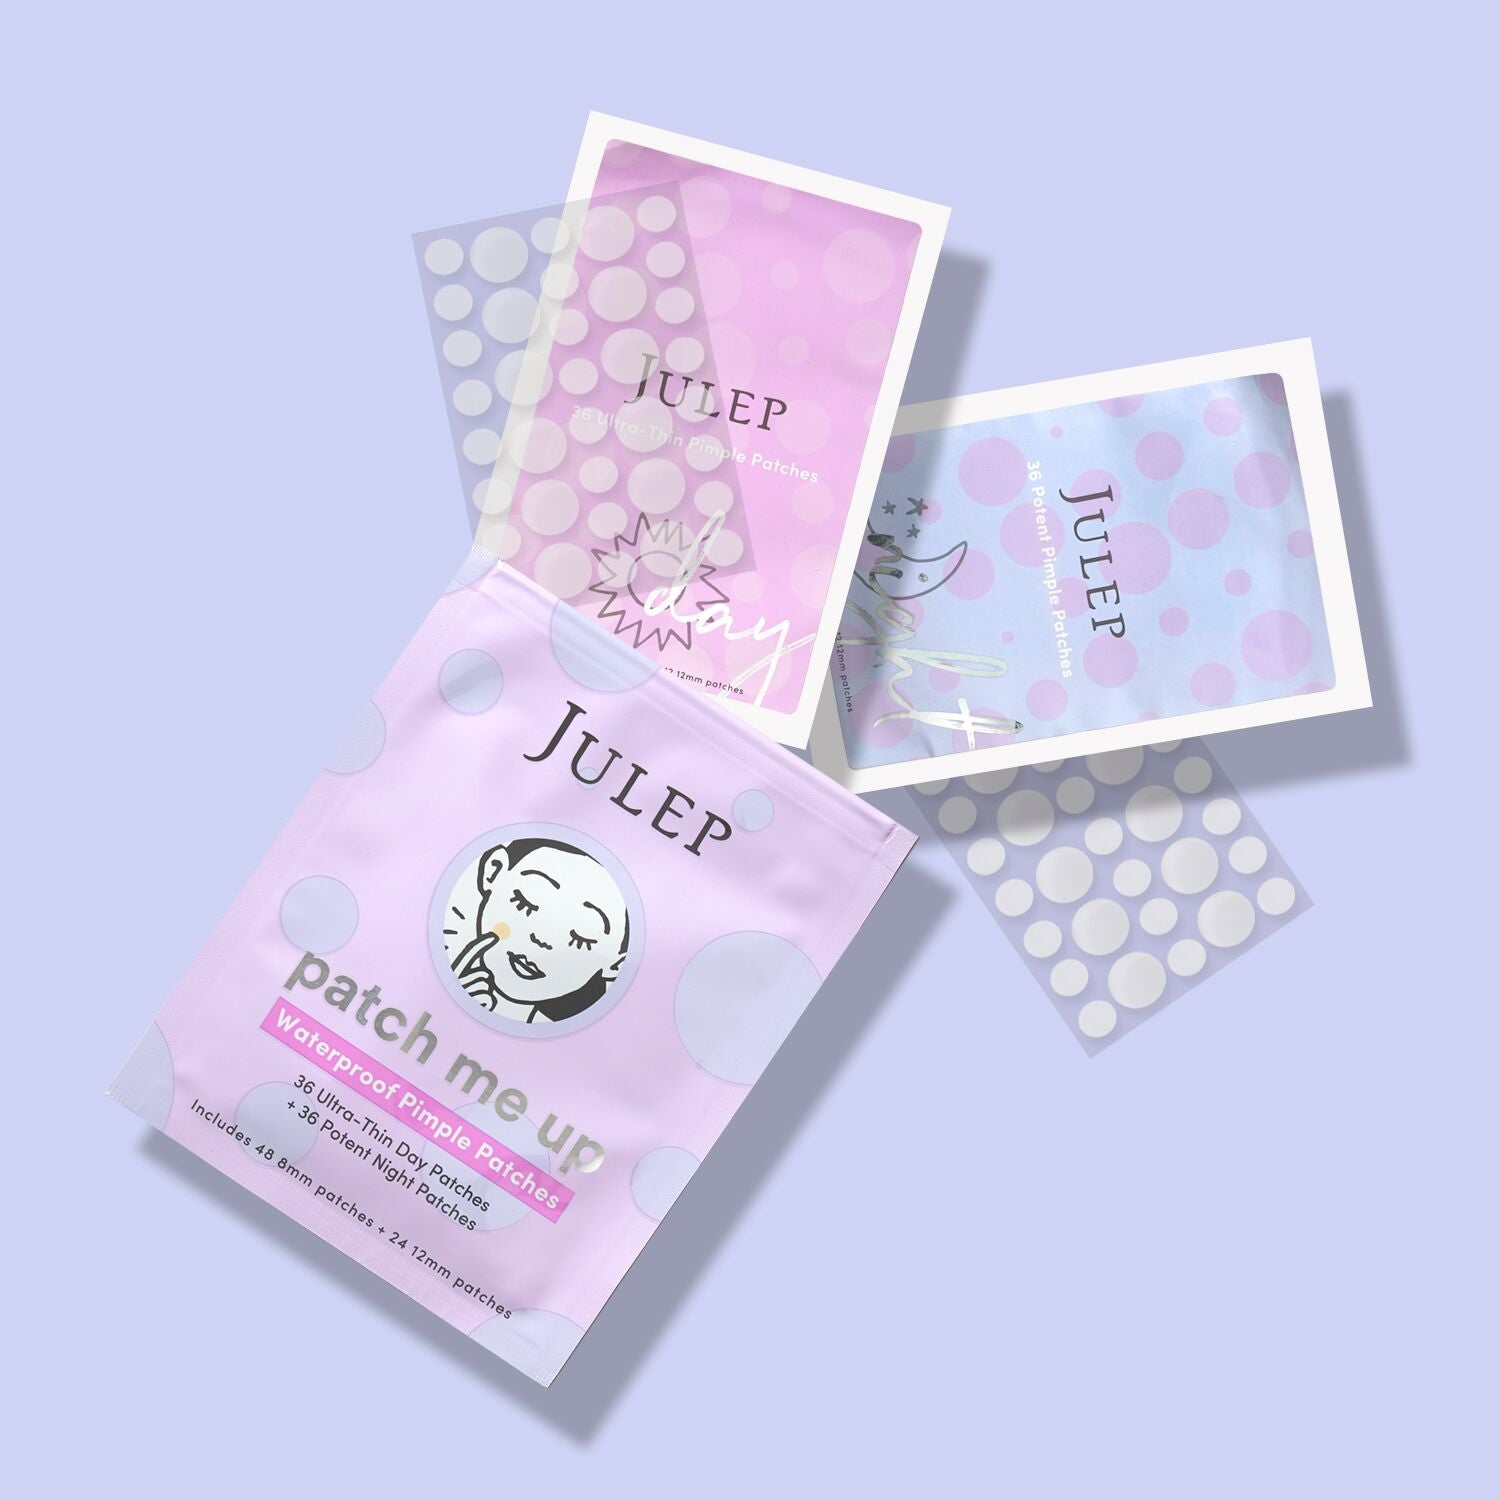 Patch Me Up Waterproof Pimple Patches